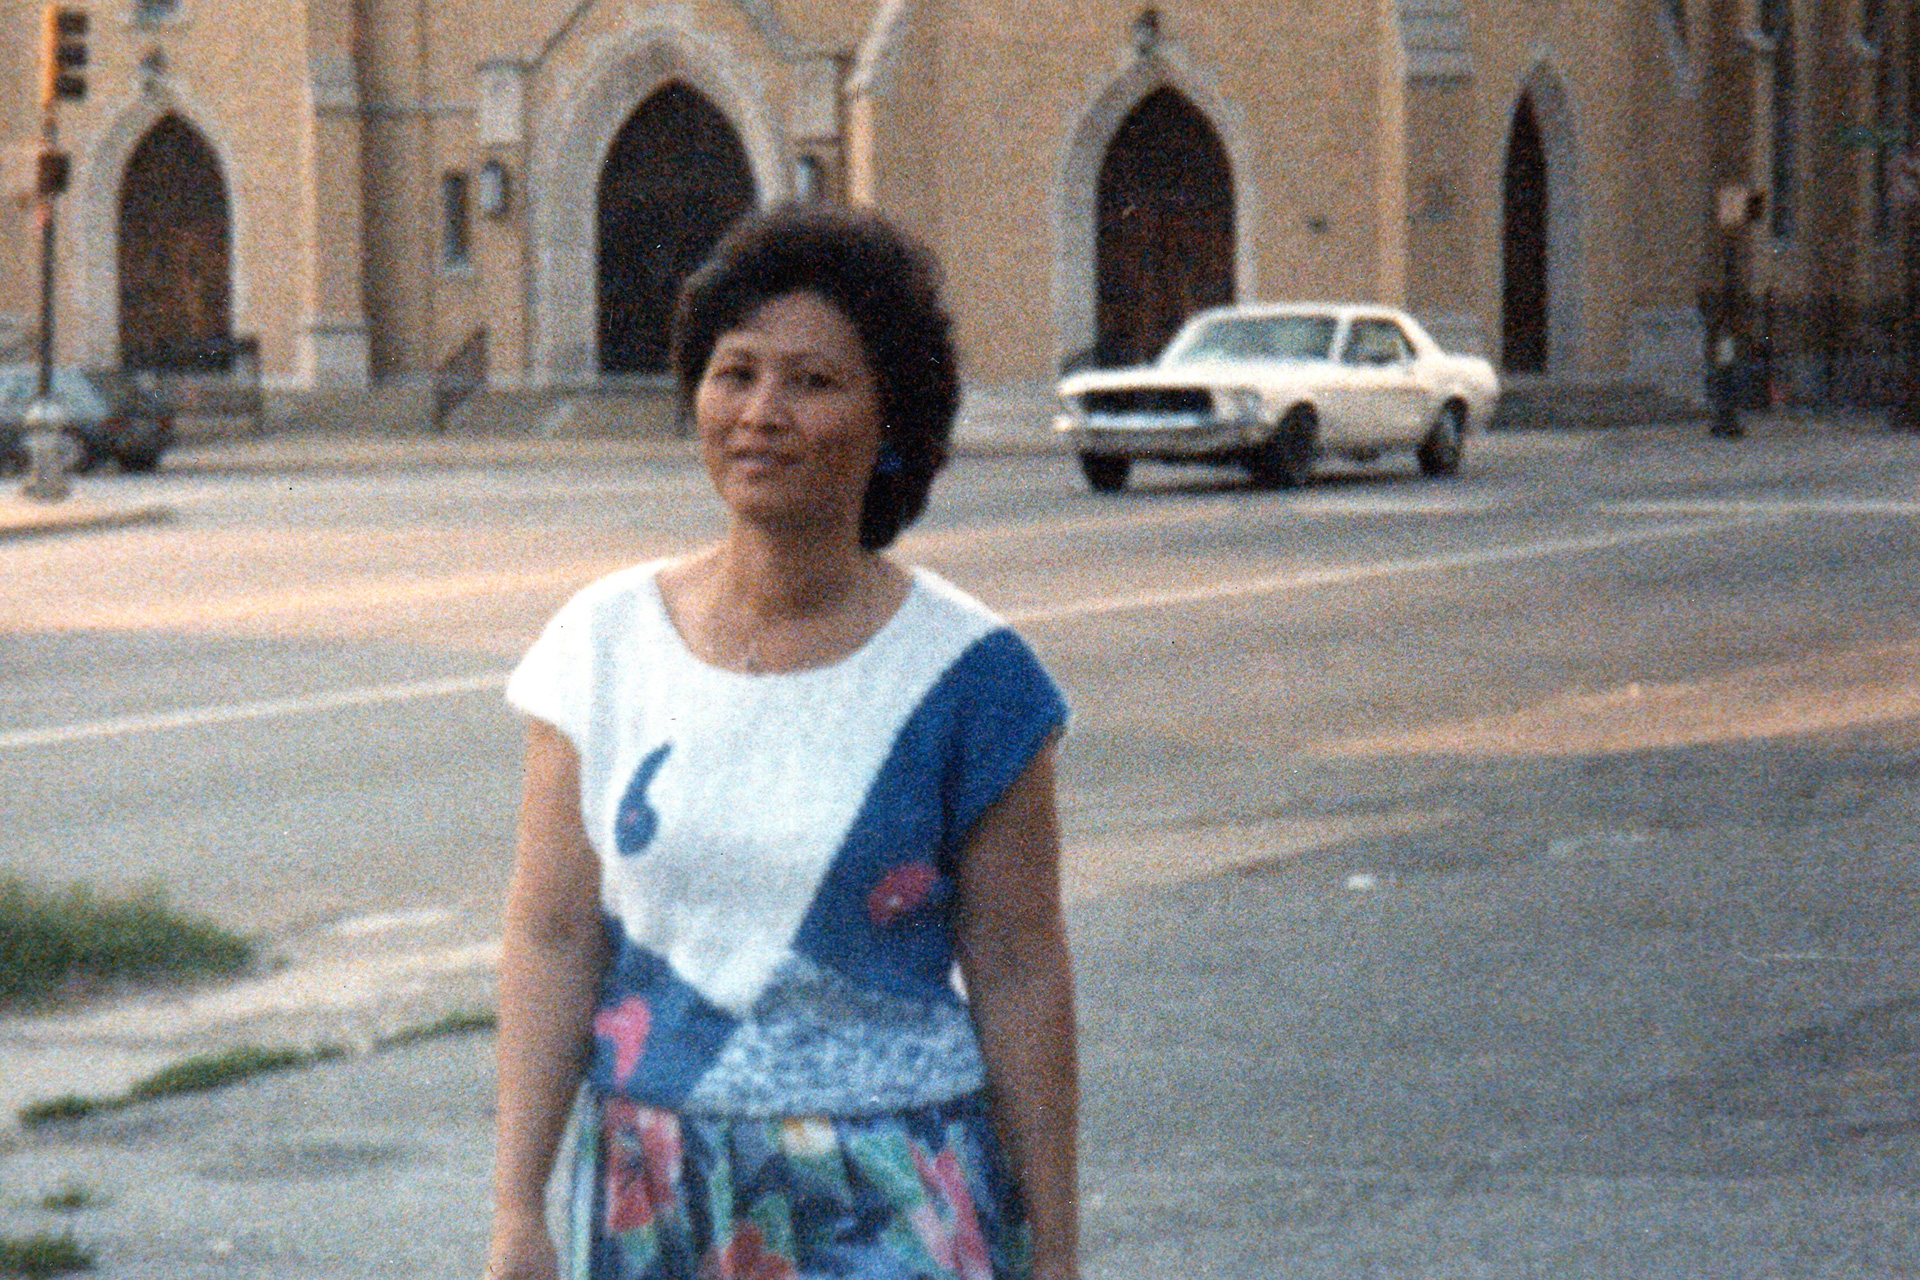 Karina's mother at Cleveland and Jefferson.